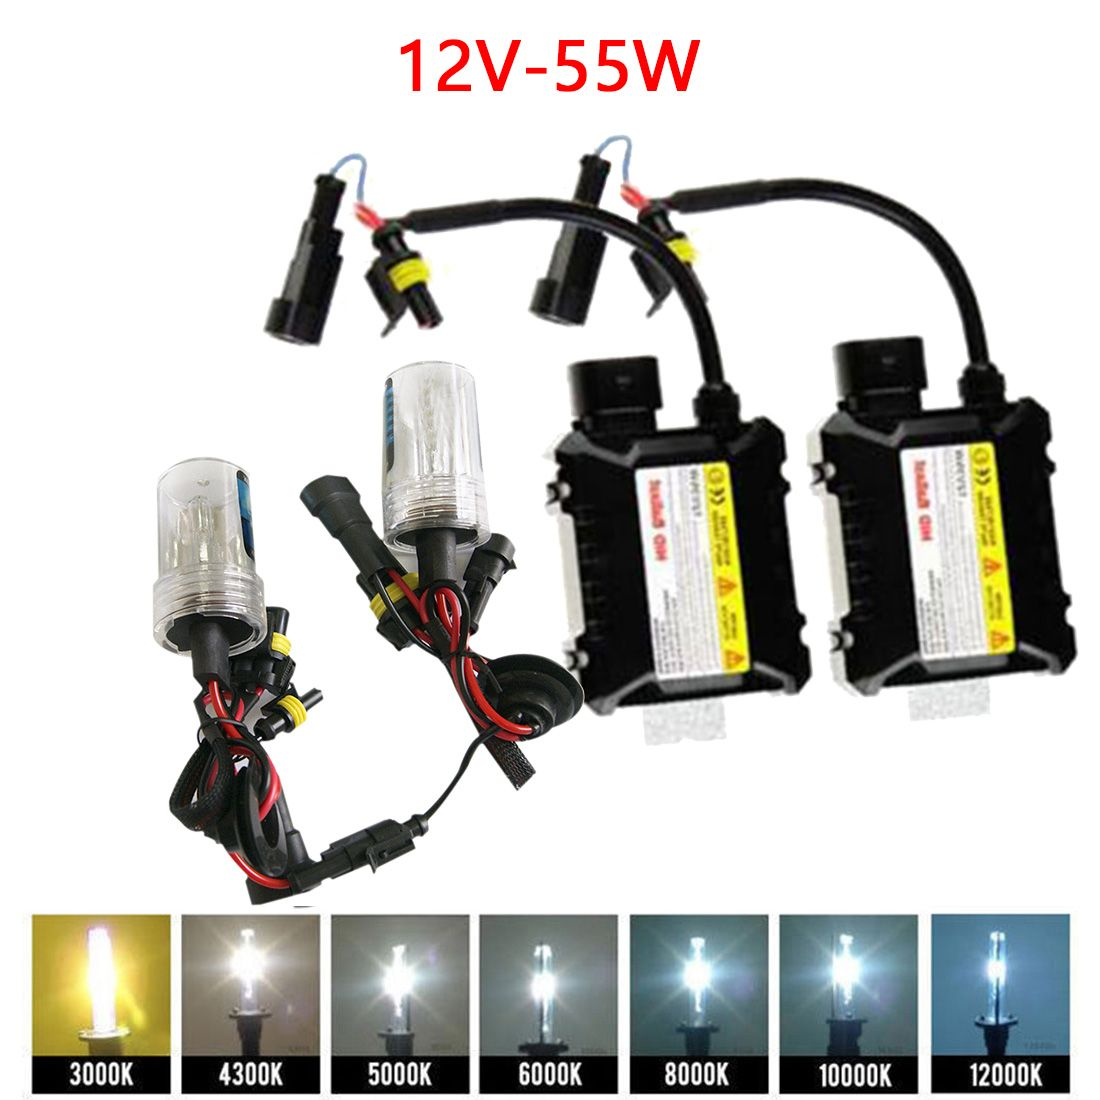 Tonewan New H7 Xenon HID Kit 55W H1 H3 H4 H8 H9 H11 9005 HB3 9006 HB4 881 H27 lamp for car headlight car styling xenon H7